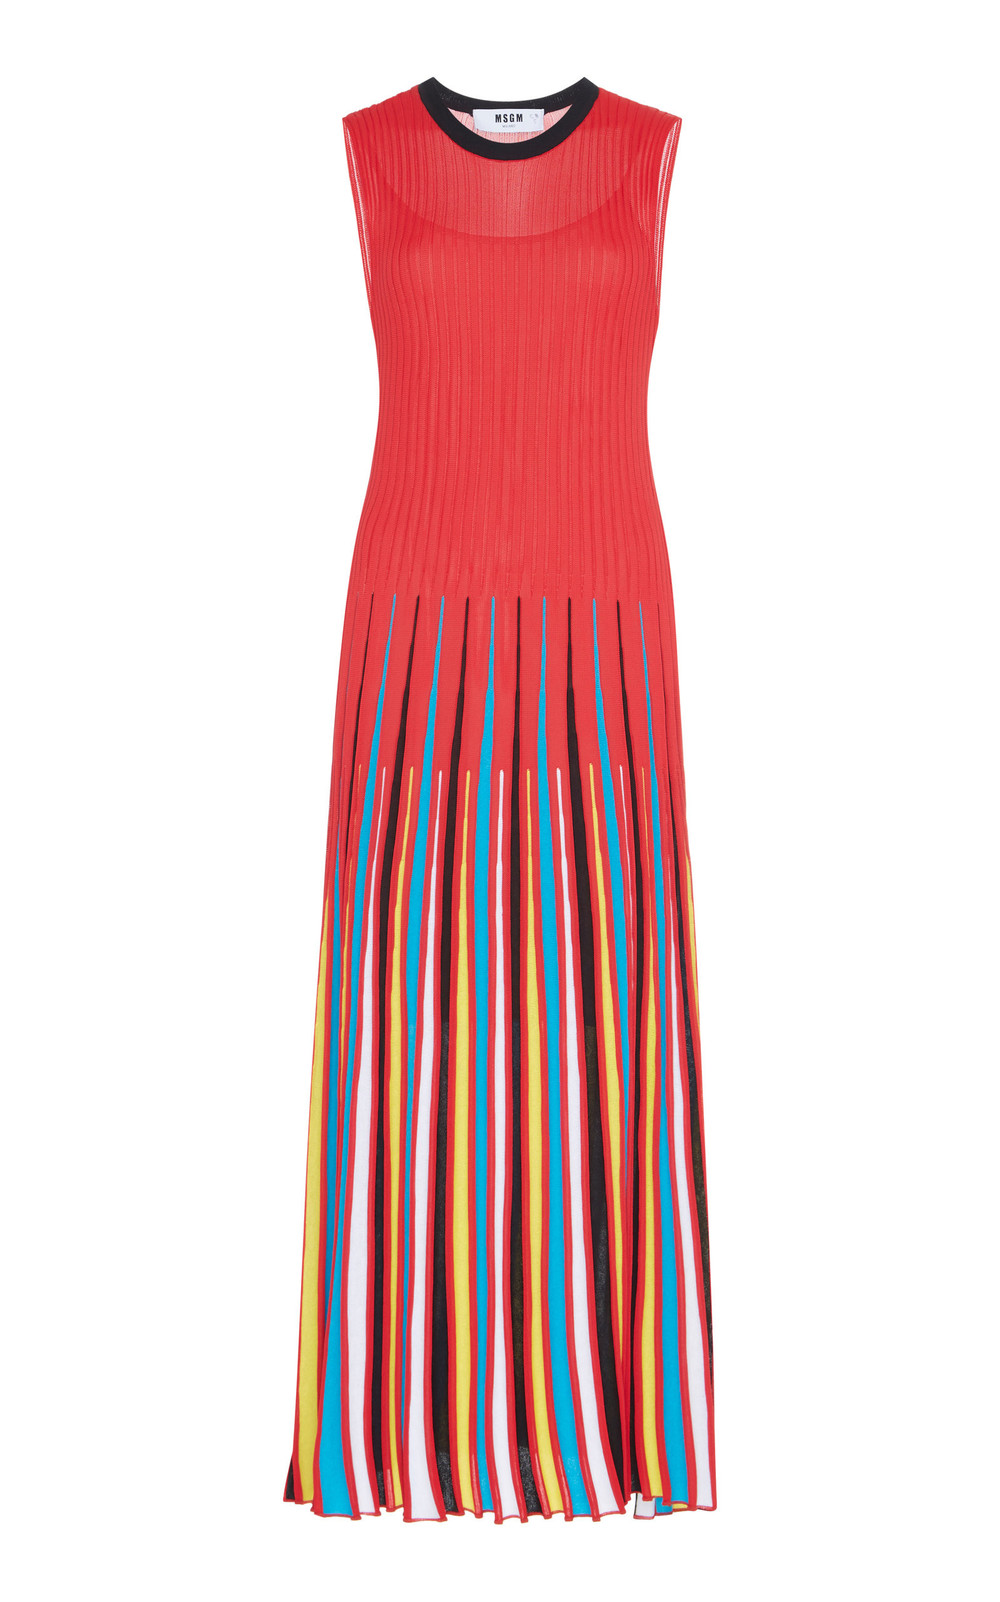 MSGM Pleated Maxi Dress in red